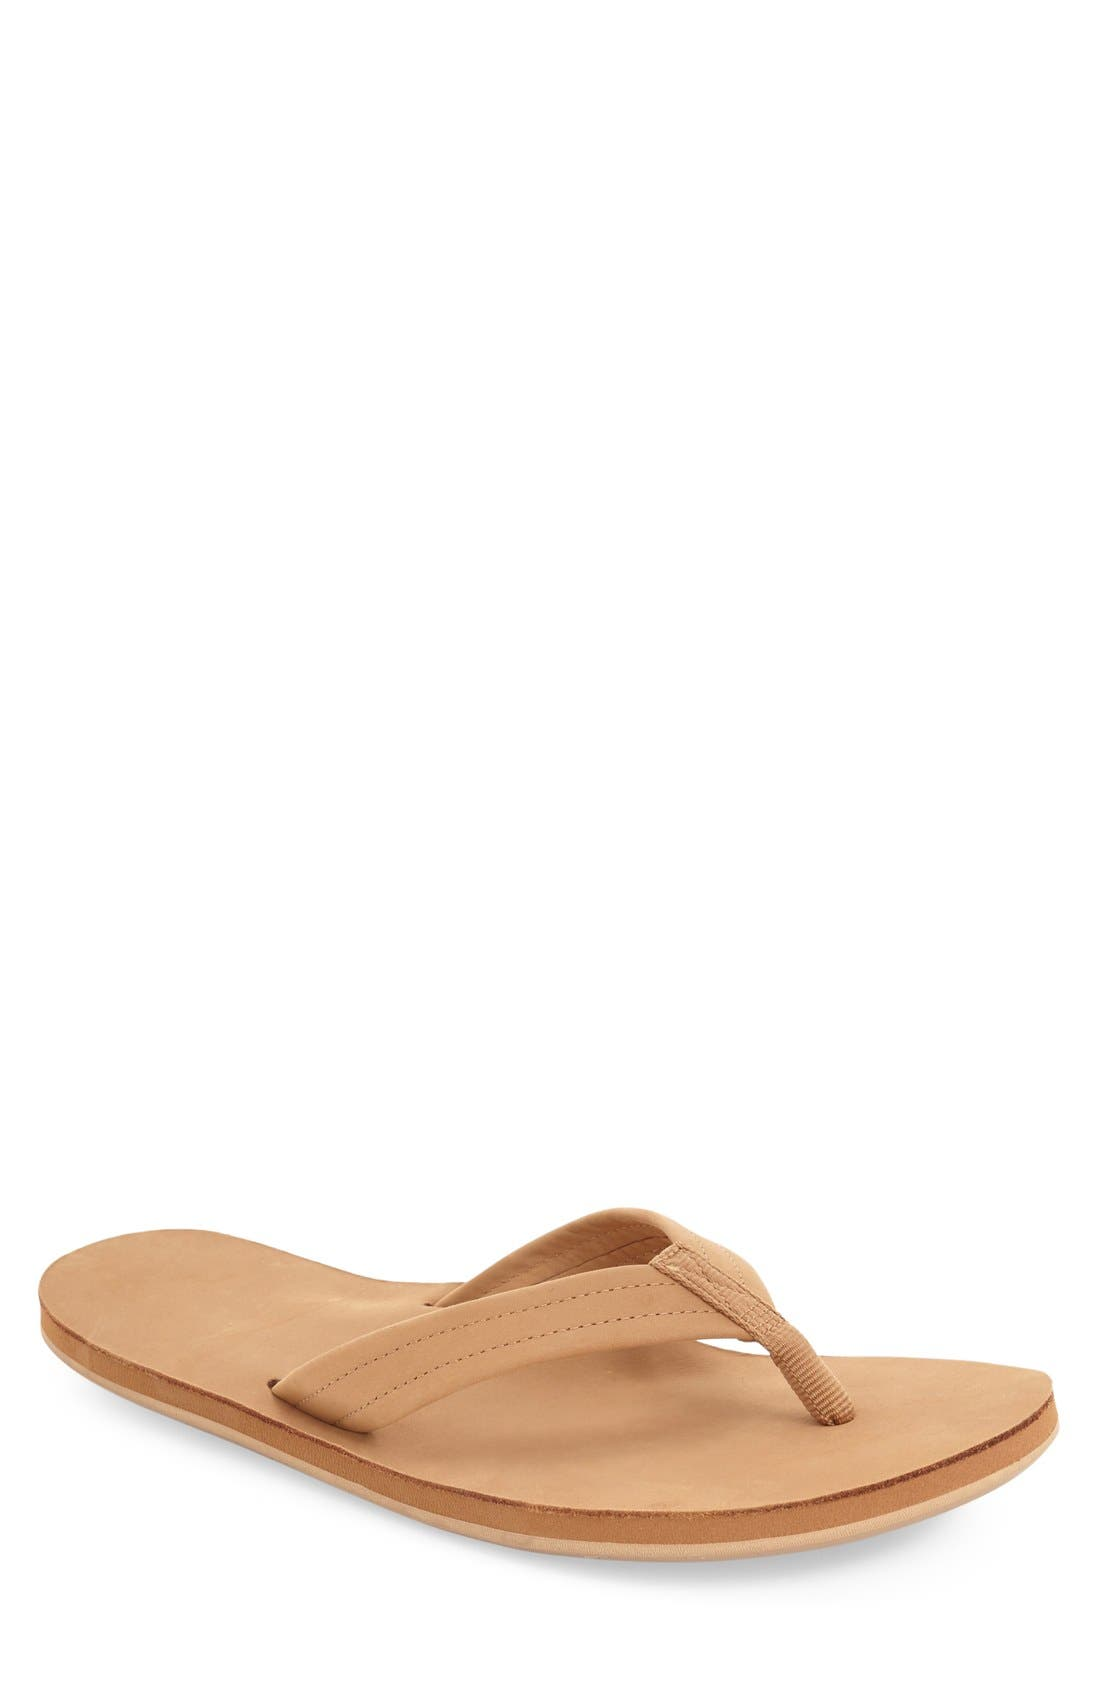 Fields Flip Flop,                         Main,                         color, TAN/ ORANGE/ TAN